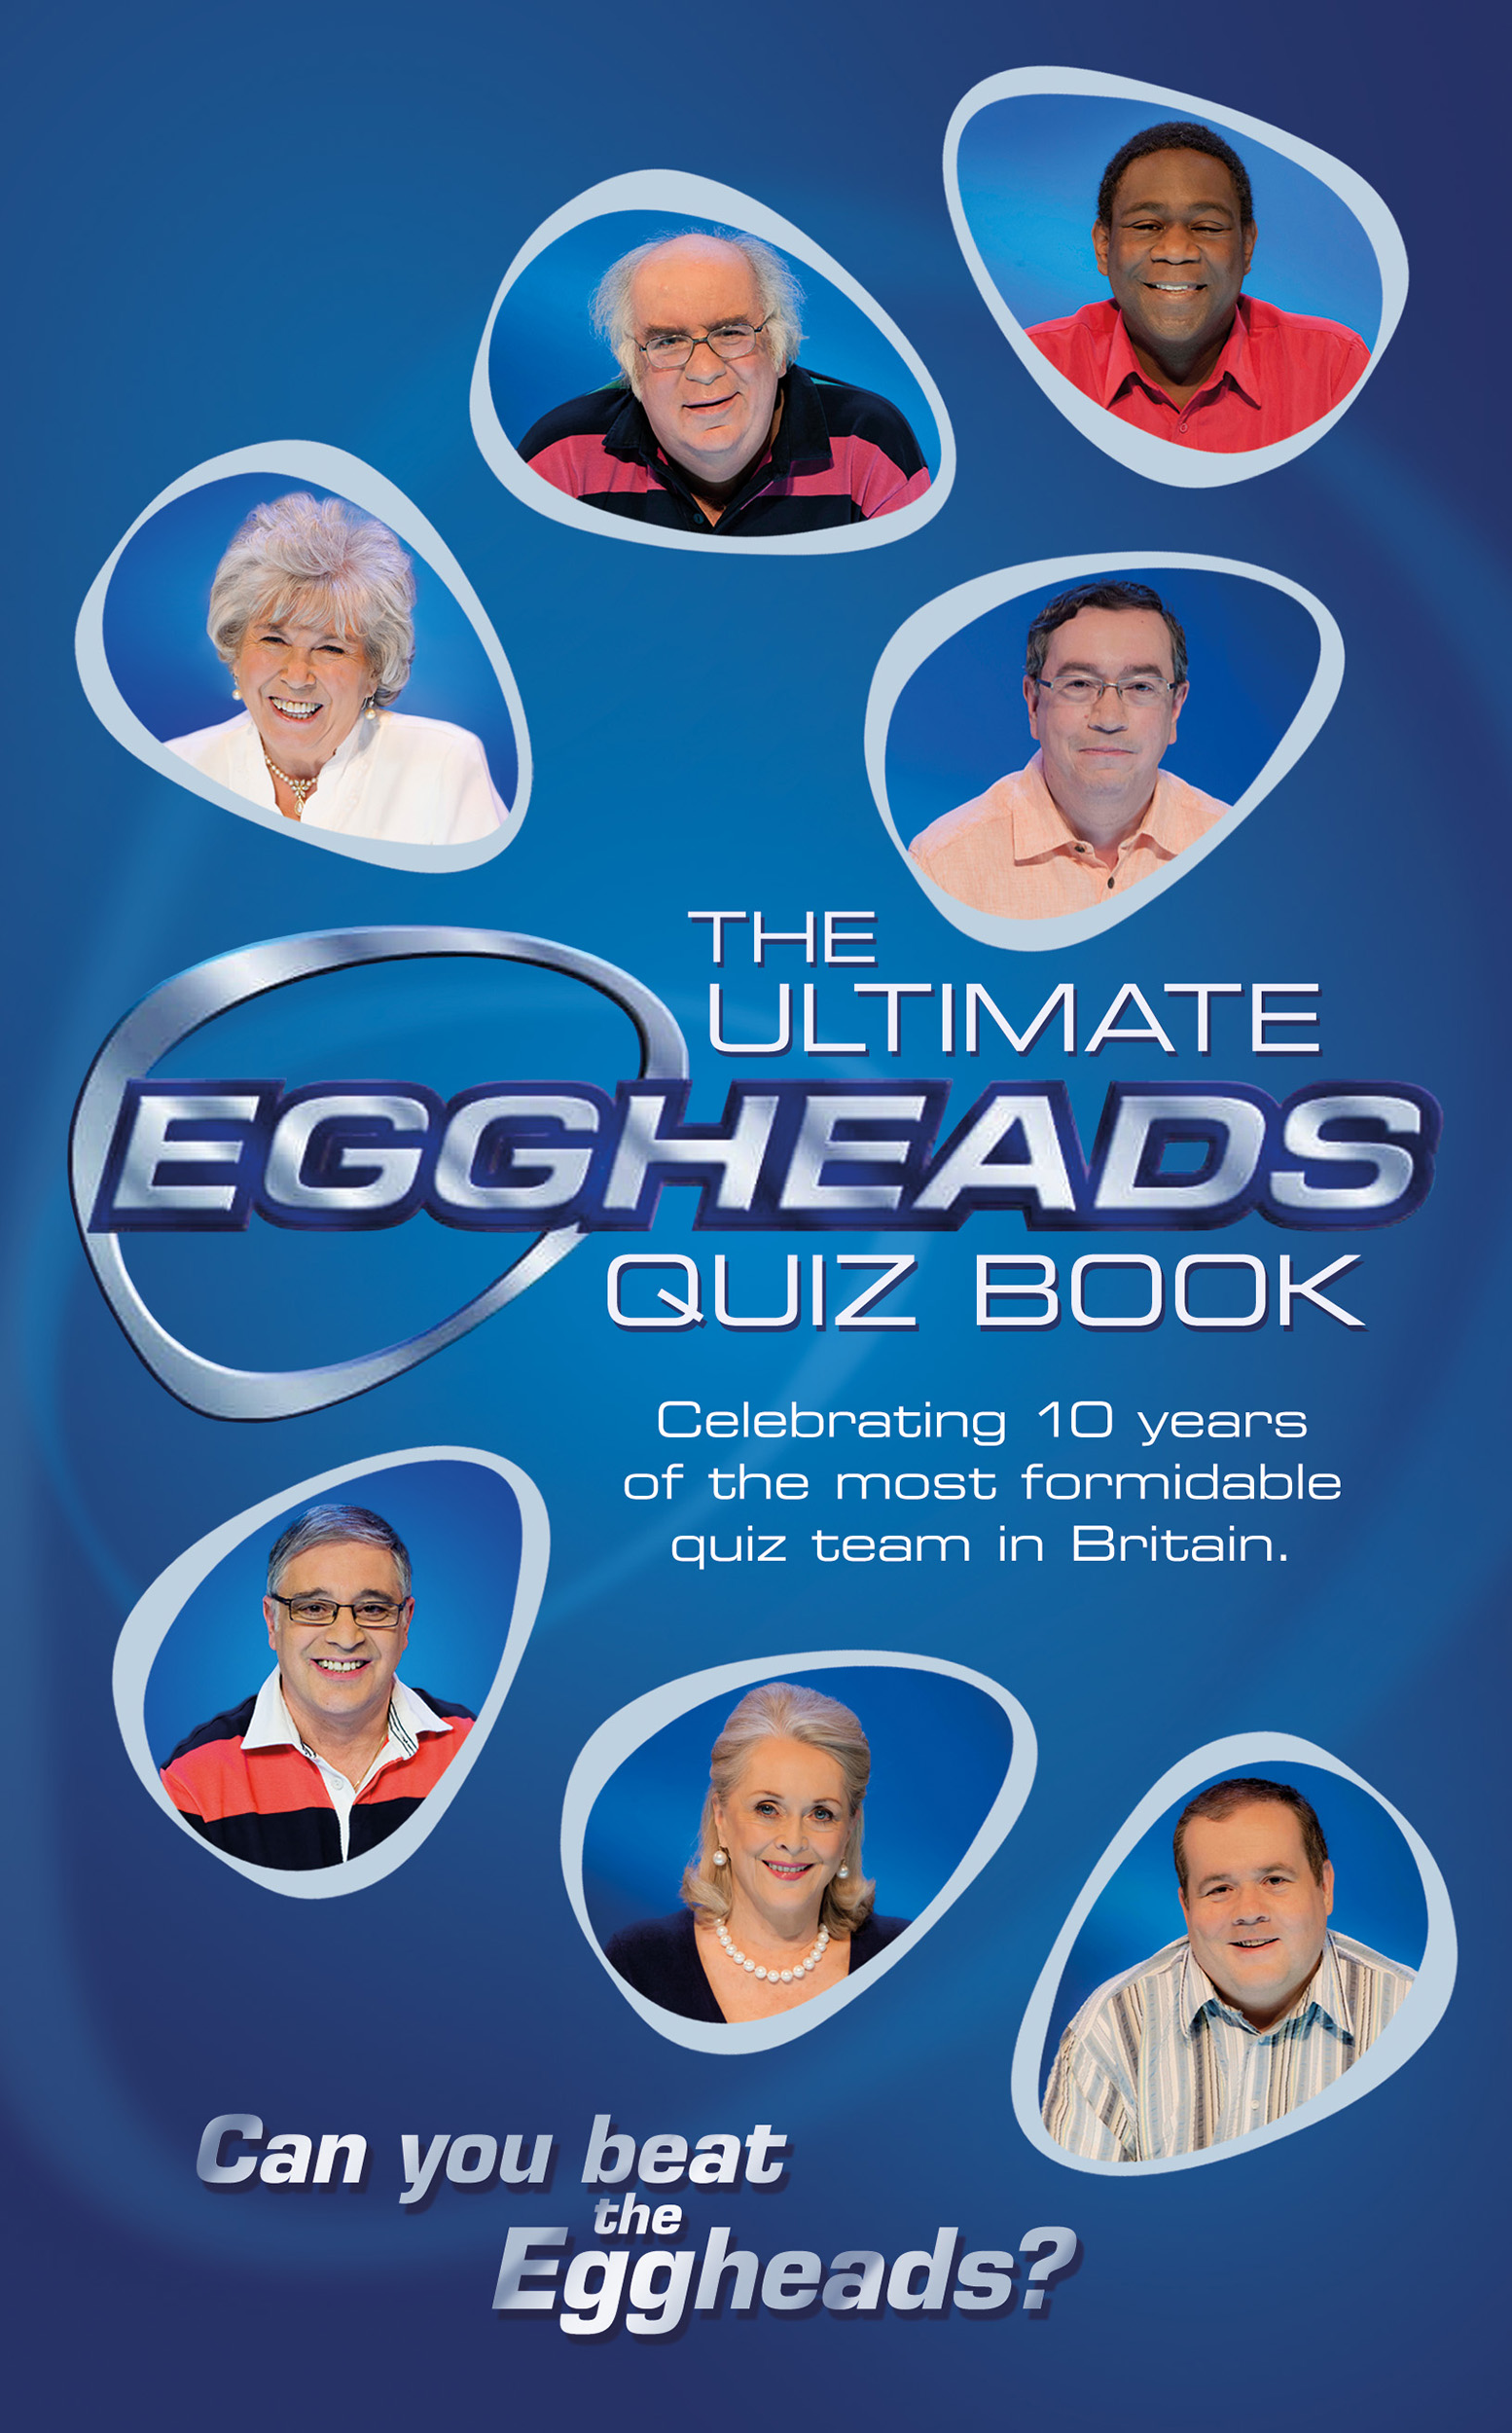 Classic Book Covers Quiz : The ultimate eggheads quiz book by